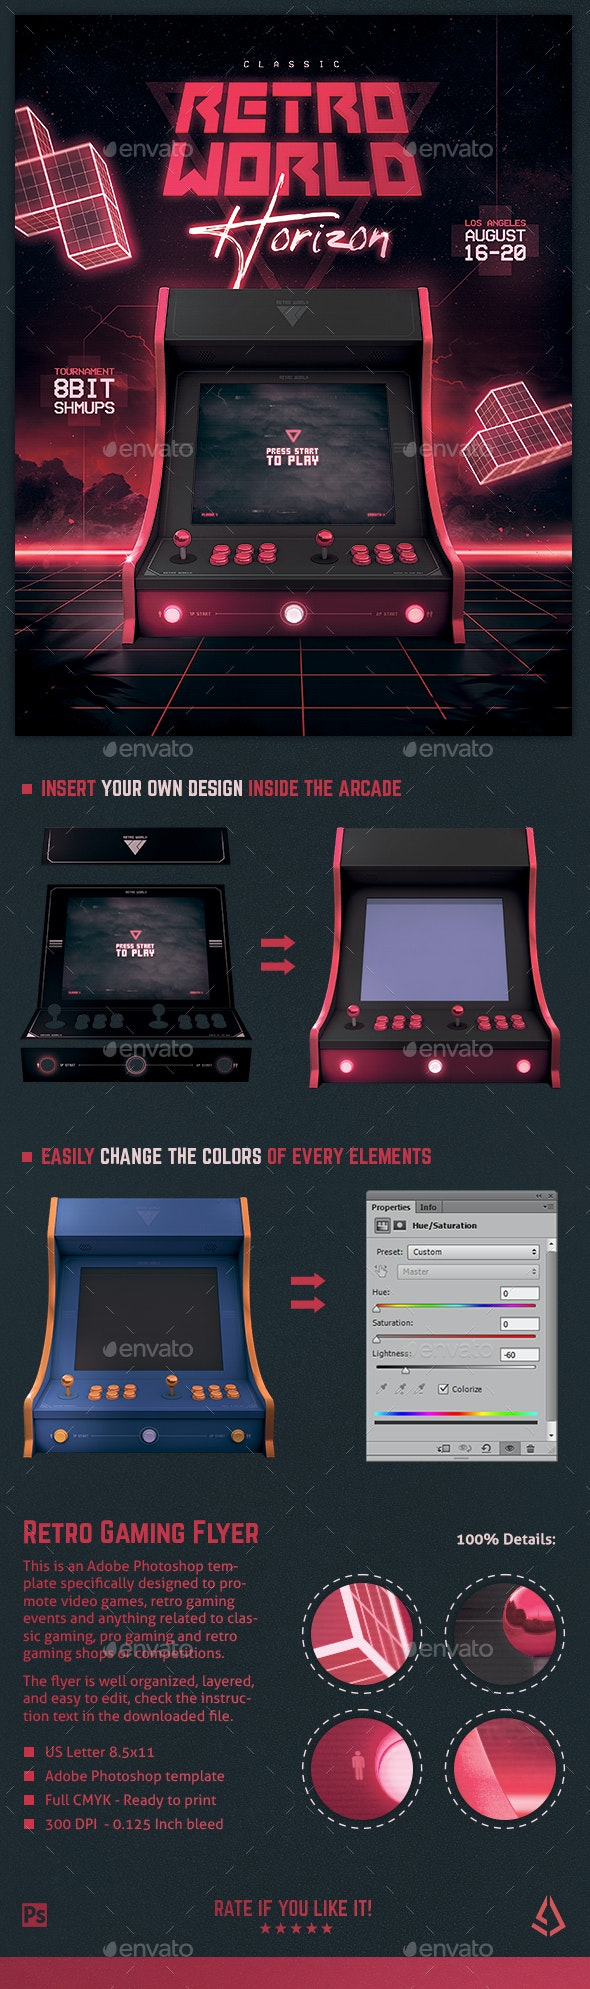 Video Games Flyer 80s Retro Gaming Arcade Mock Up Poster - Miscellaneous Events